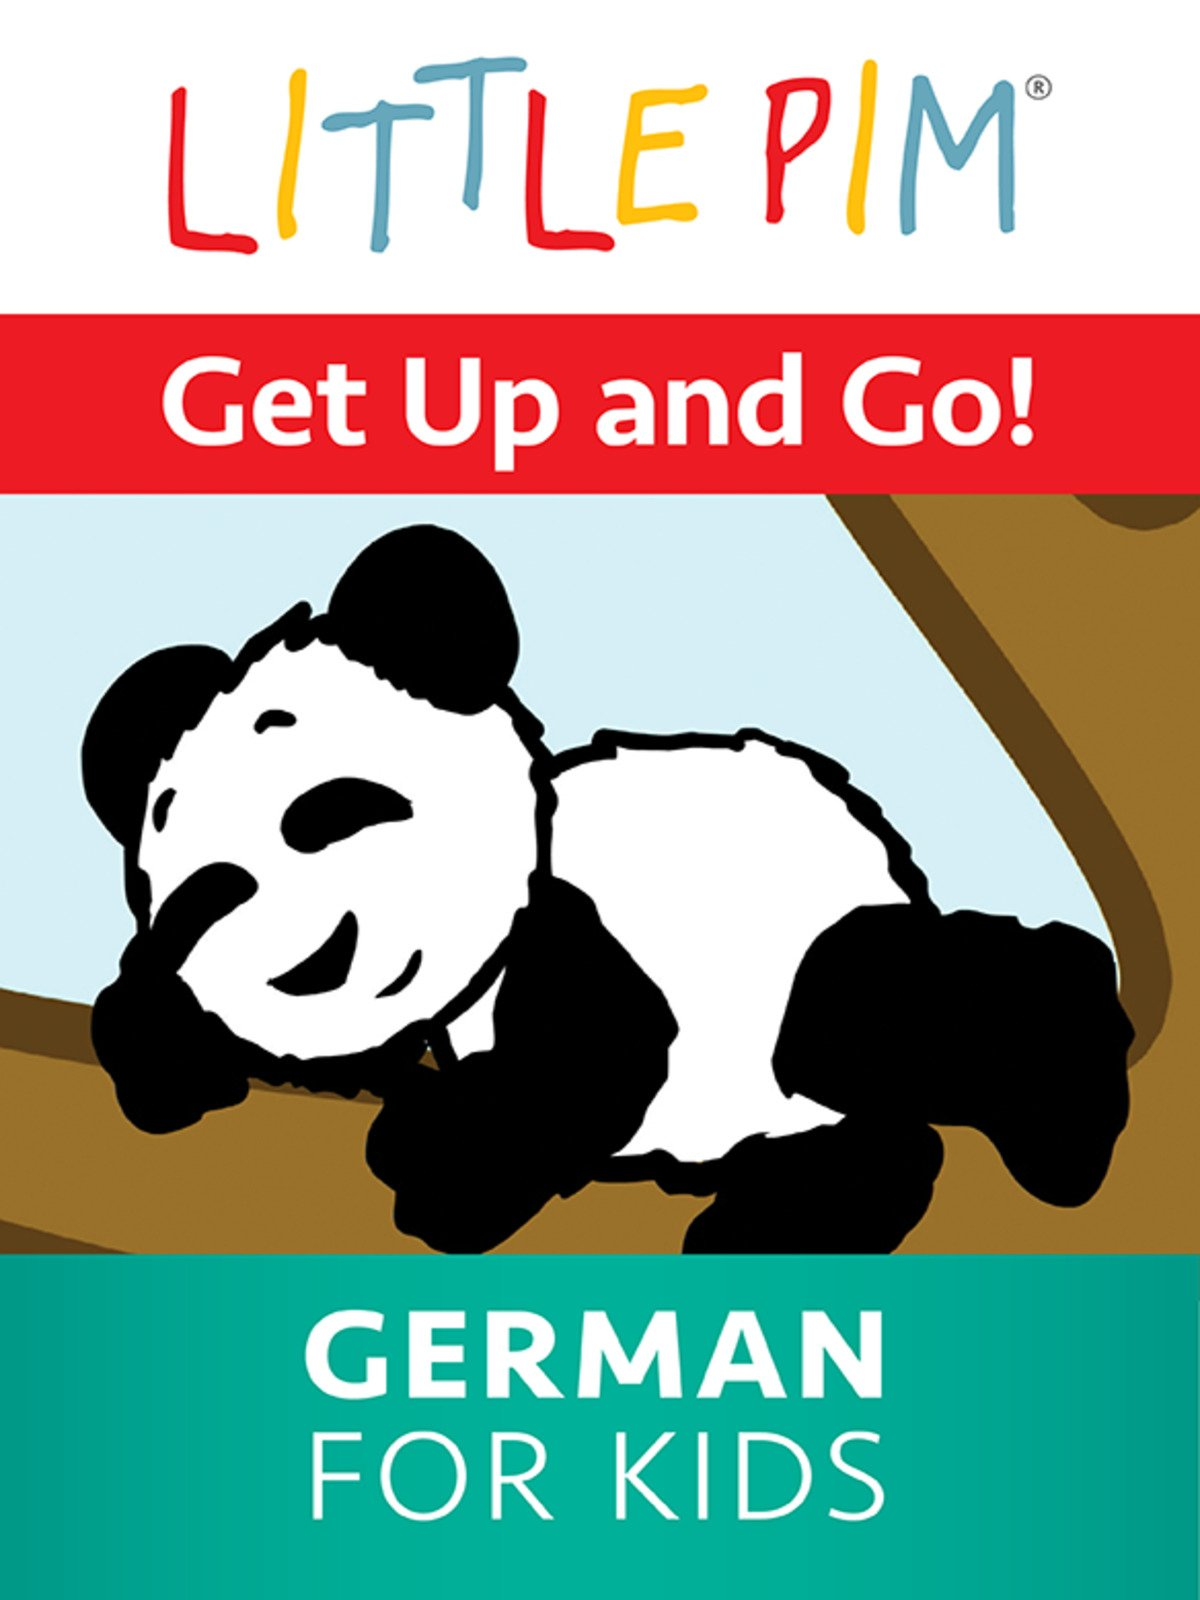 Little Pim: Get Up and Go - German for Kids on Amazon Prime Instant Video UK